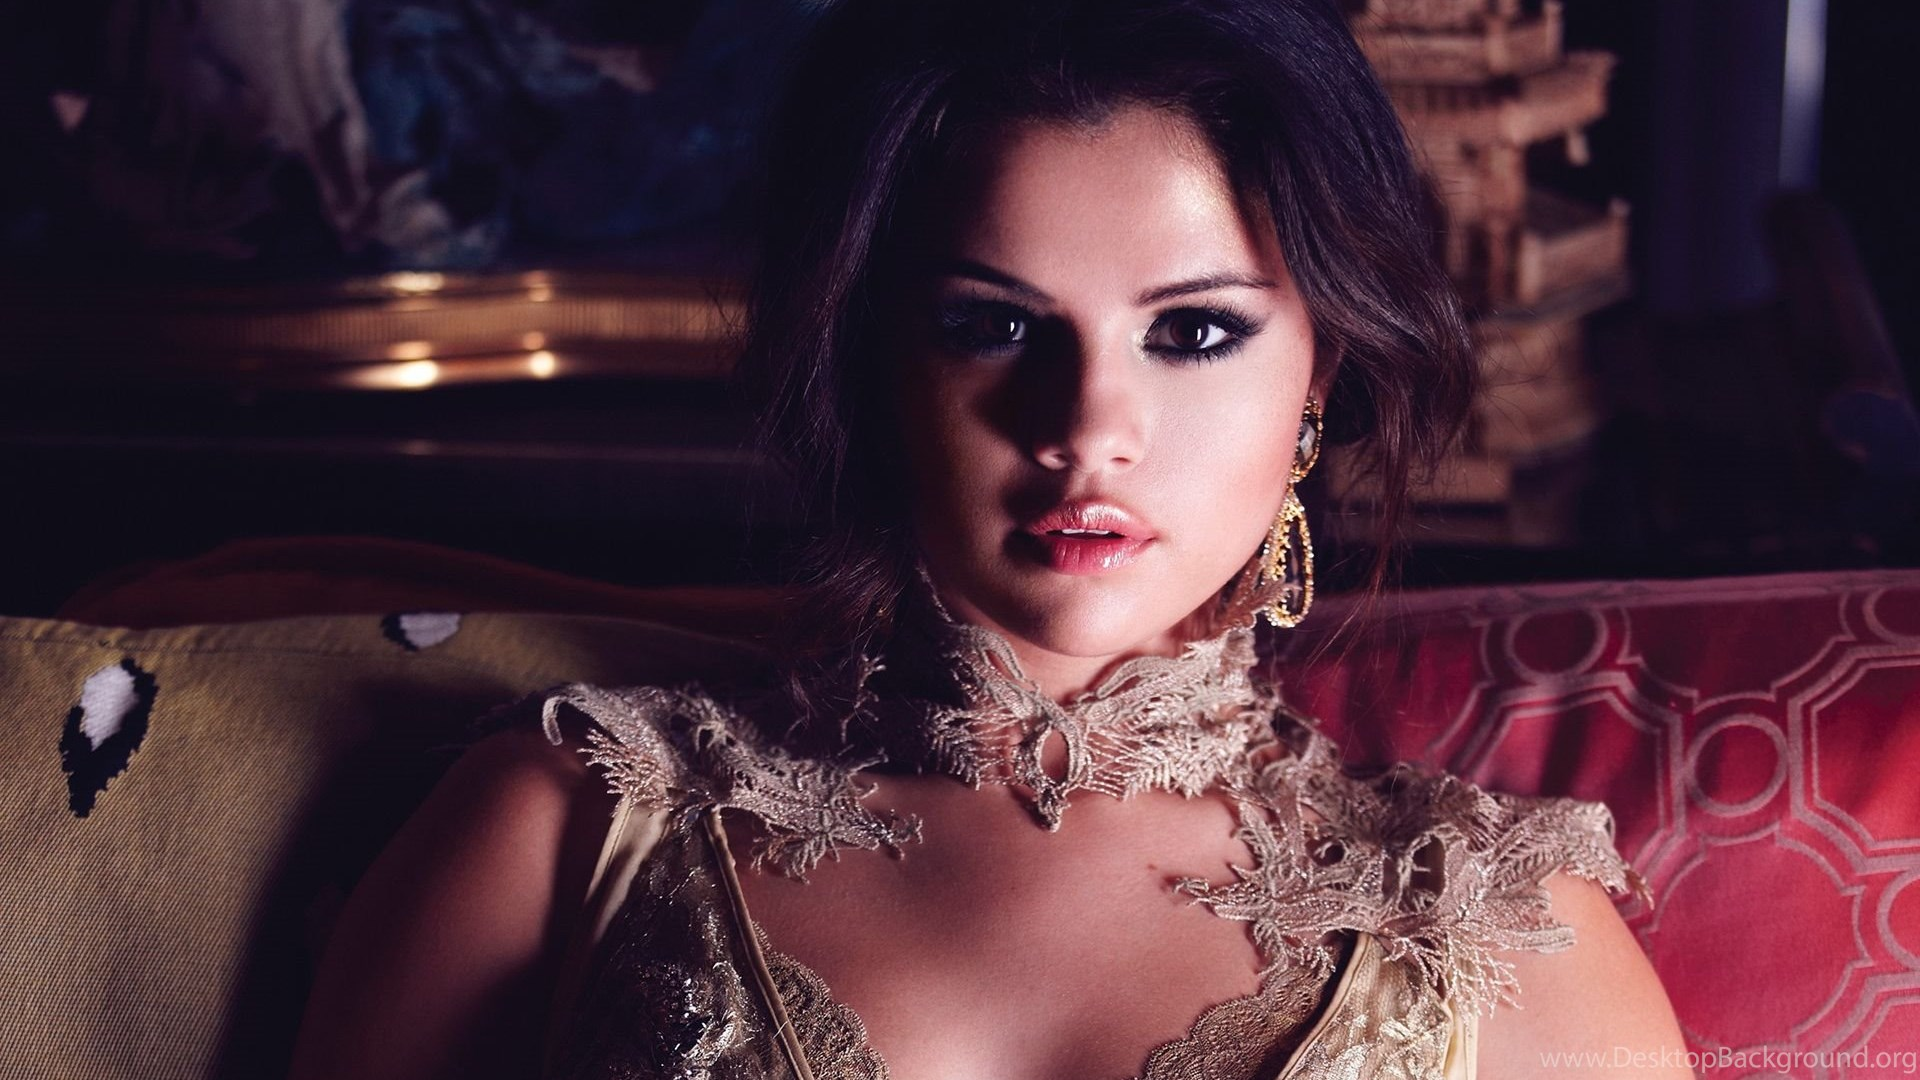 Selena Gomez Come And Get It Wallpapers Desktop Background